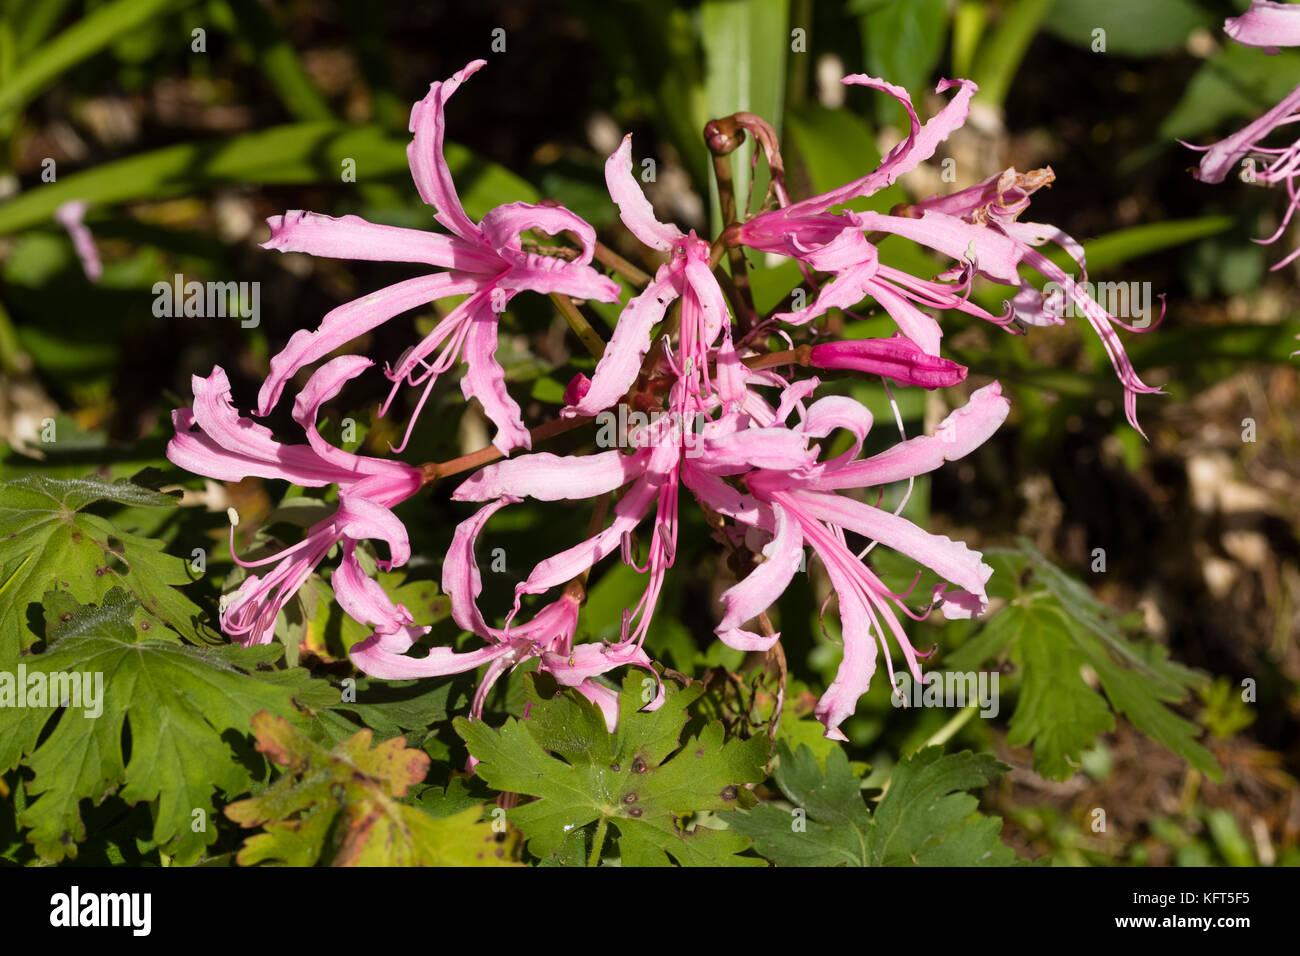 Narrow pnk petals of teh autumn flowering South African hardy bulb, Nerine bowdeni - Stock Image